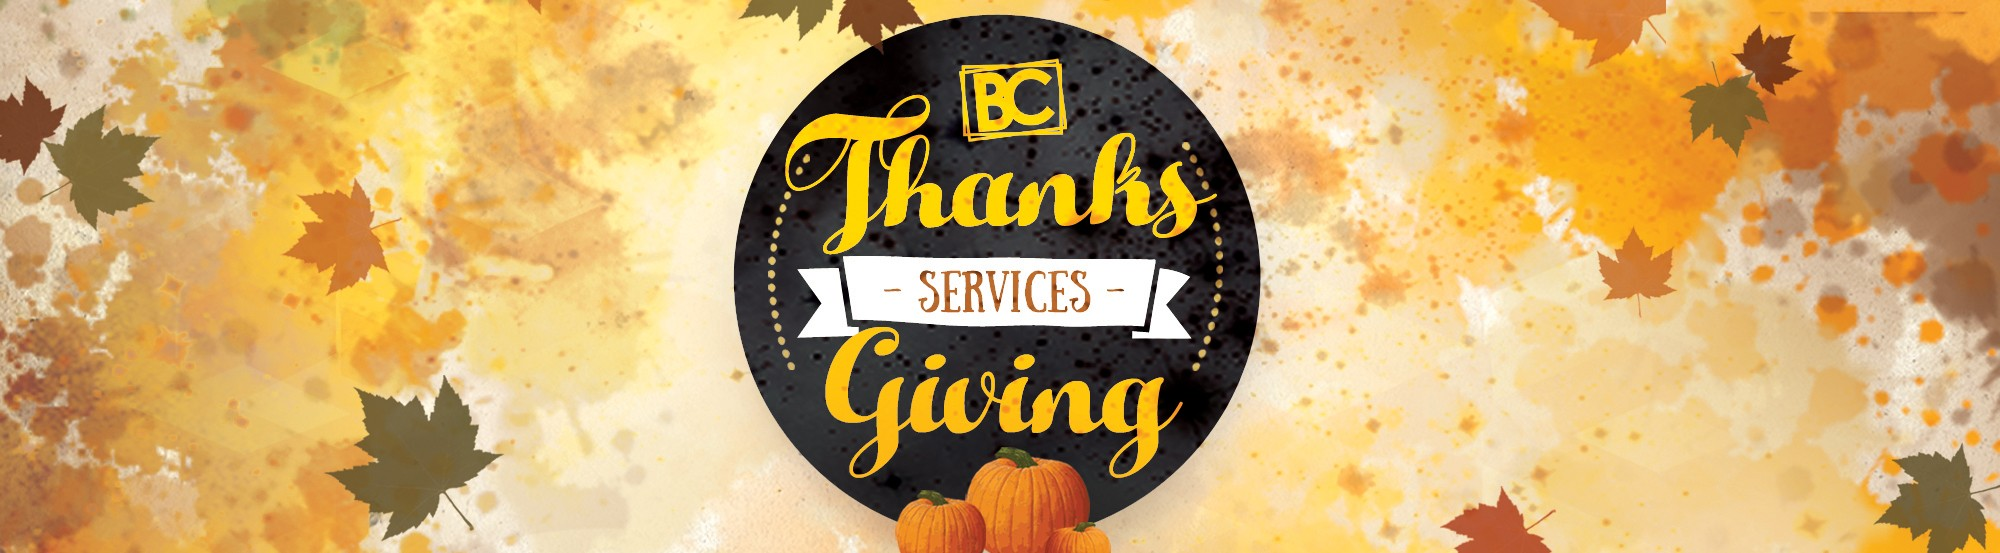 Thanksgiving Services 2015 main